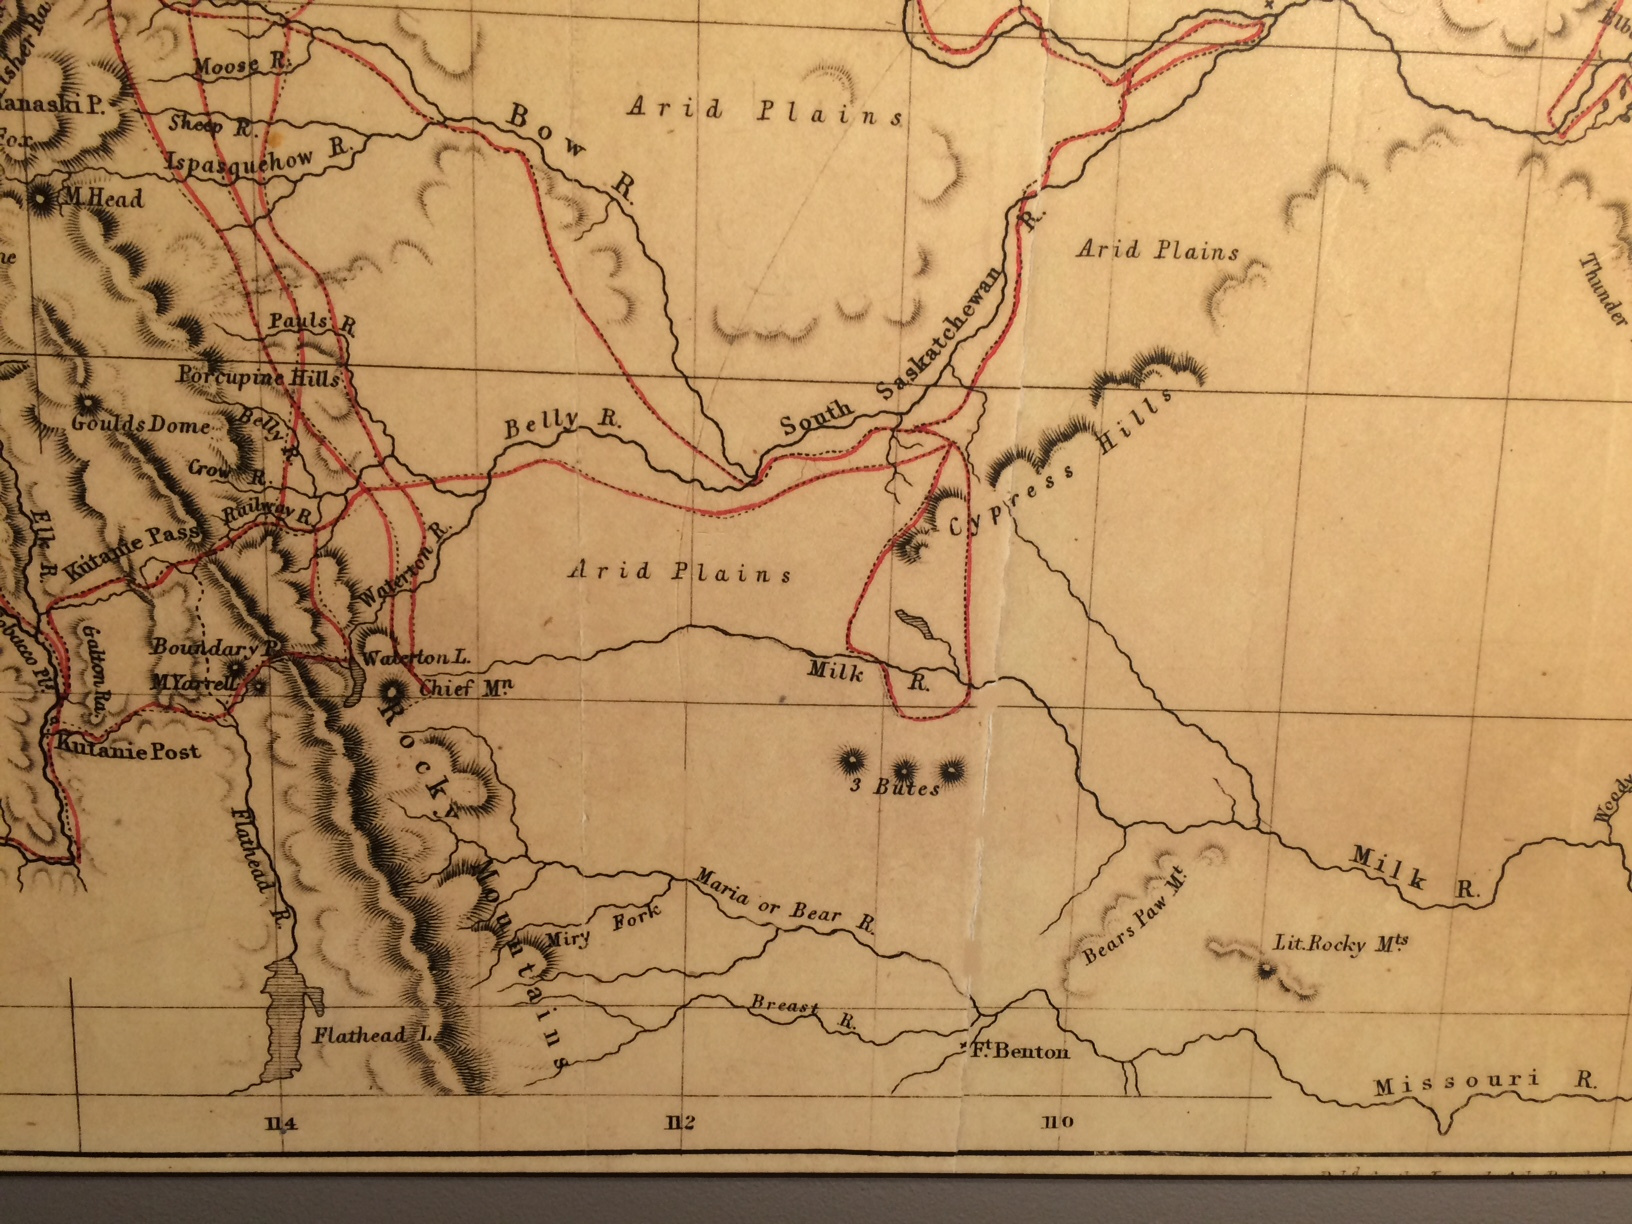 """1859 map by Captain John Palliser. Note the Oldman watershed simply says """"arid plains"""", which he described as """"unfit for human habitation""""."""